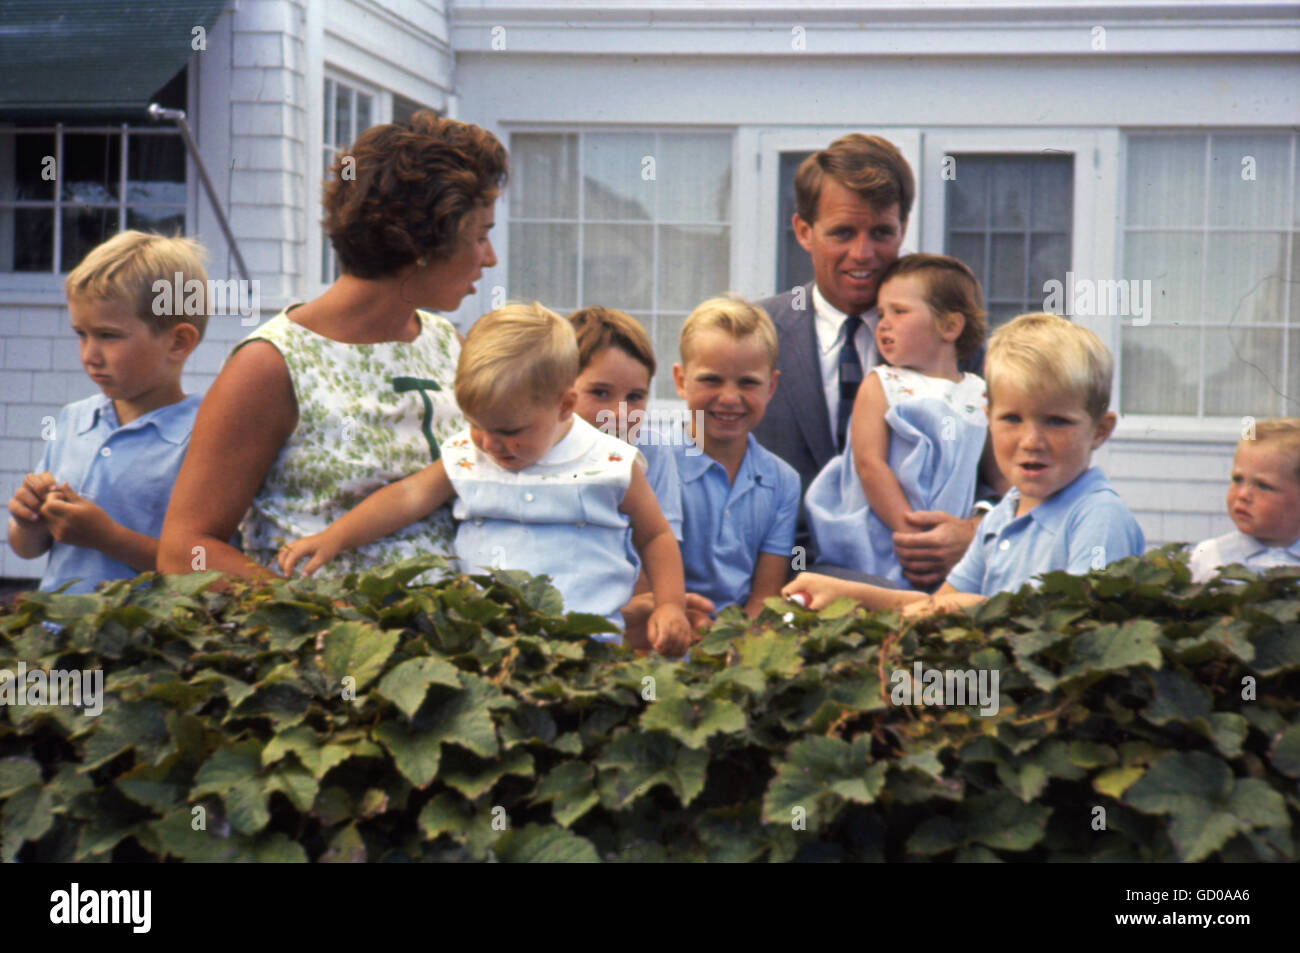 Robert F. Kennedy with Ethel Kennedy and Family, at Hyannis Port, August 1959. - Stock Image